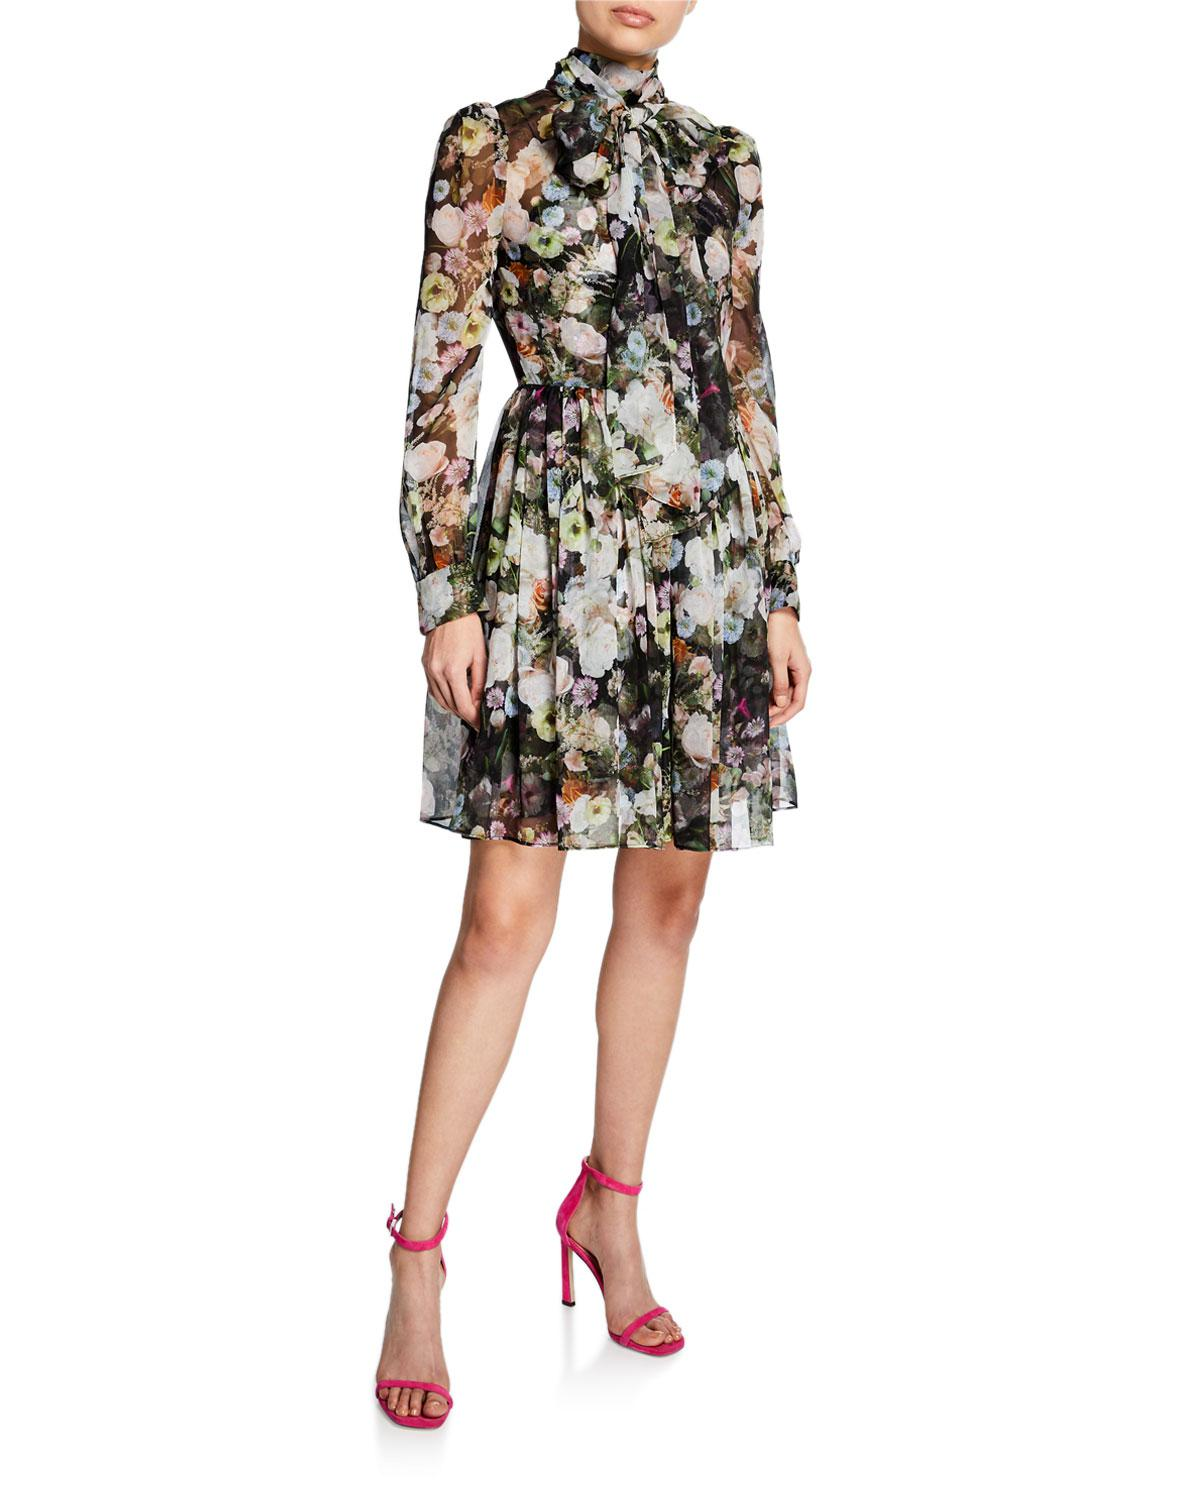 1d5ebe5f7d33 adam-lippes-BLACK-PATTERN-Mock-neck-Floral-Print-Chiffon-Mini-Dress.jpeg